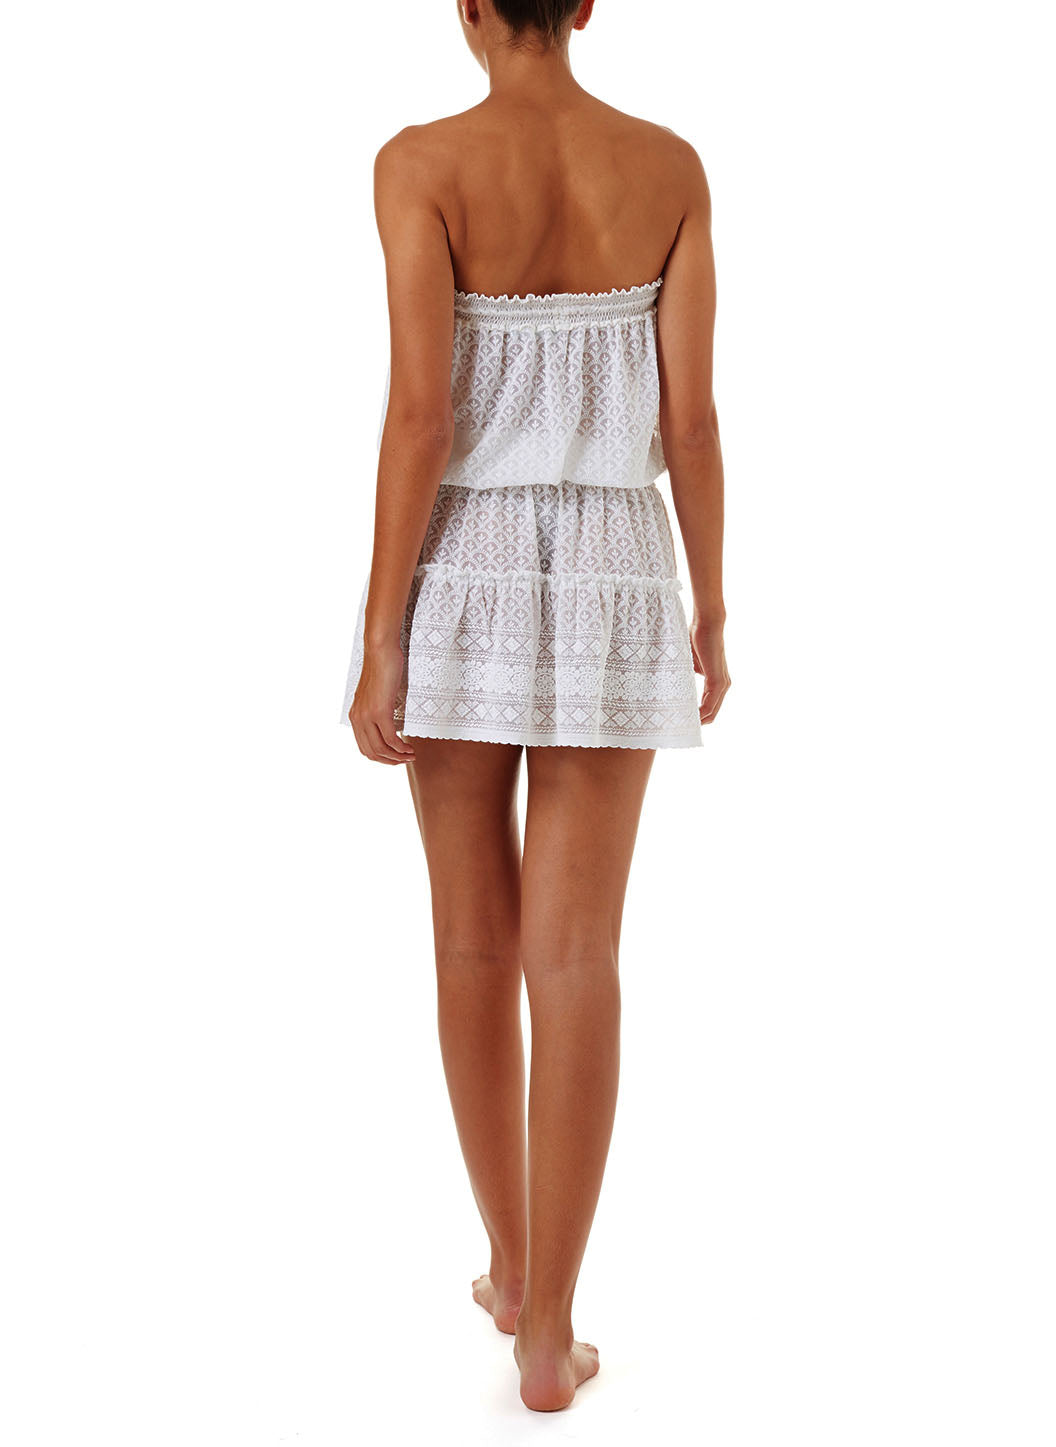 Fru White Textured Bandeau Short Frill Beach Dress